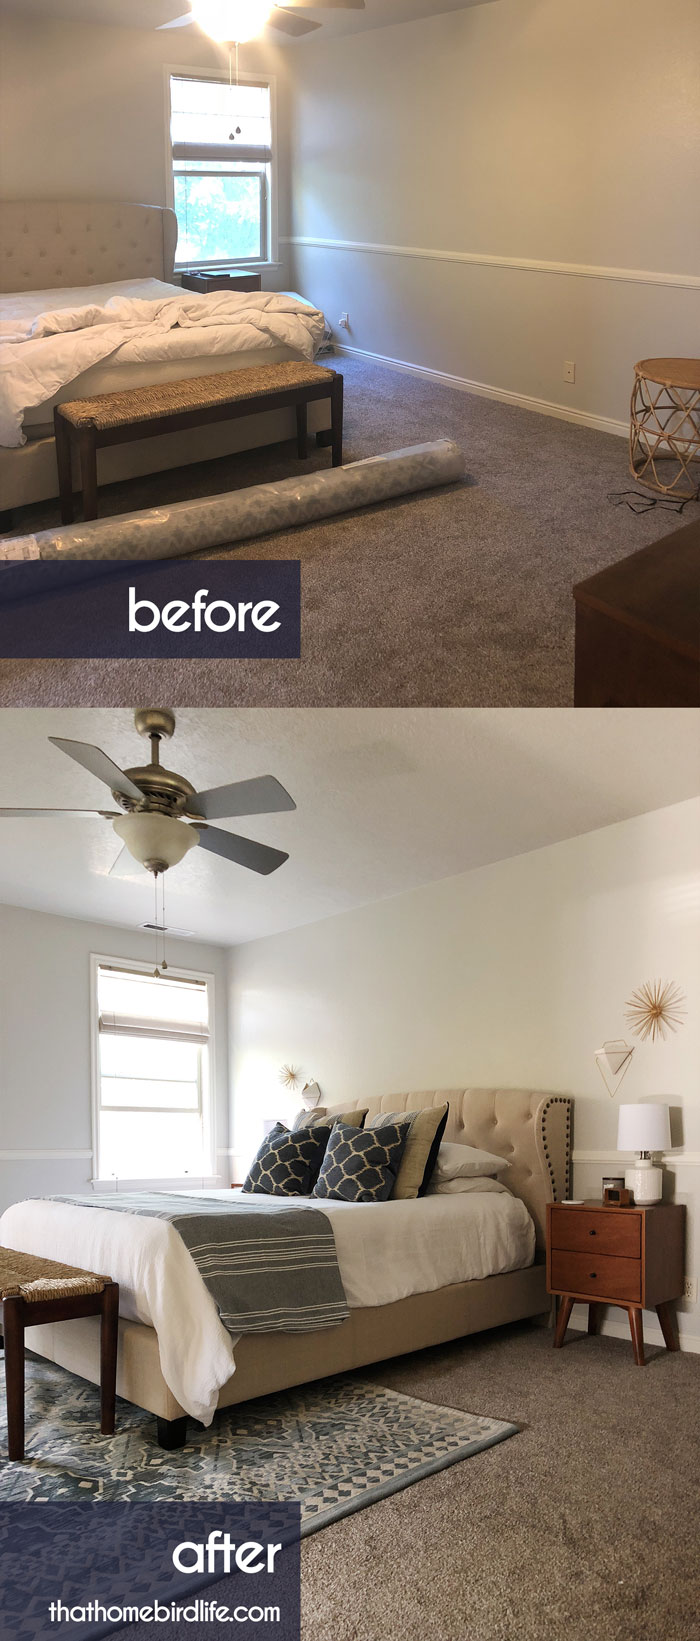 BEFORE AND AFTER - Mid Century Modern, Coastal, Master Bedroom Makeover - That Homebird Life Blog